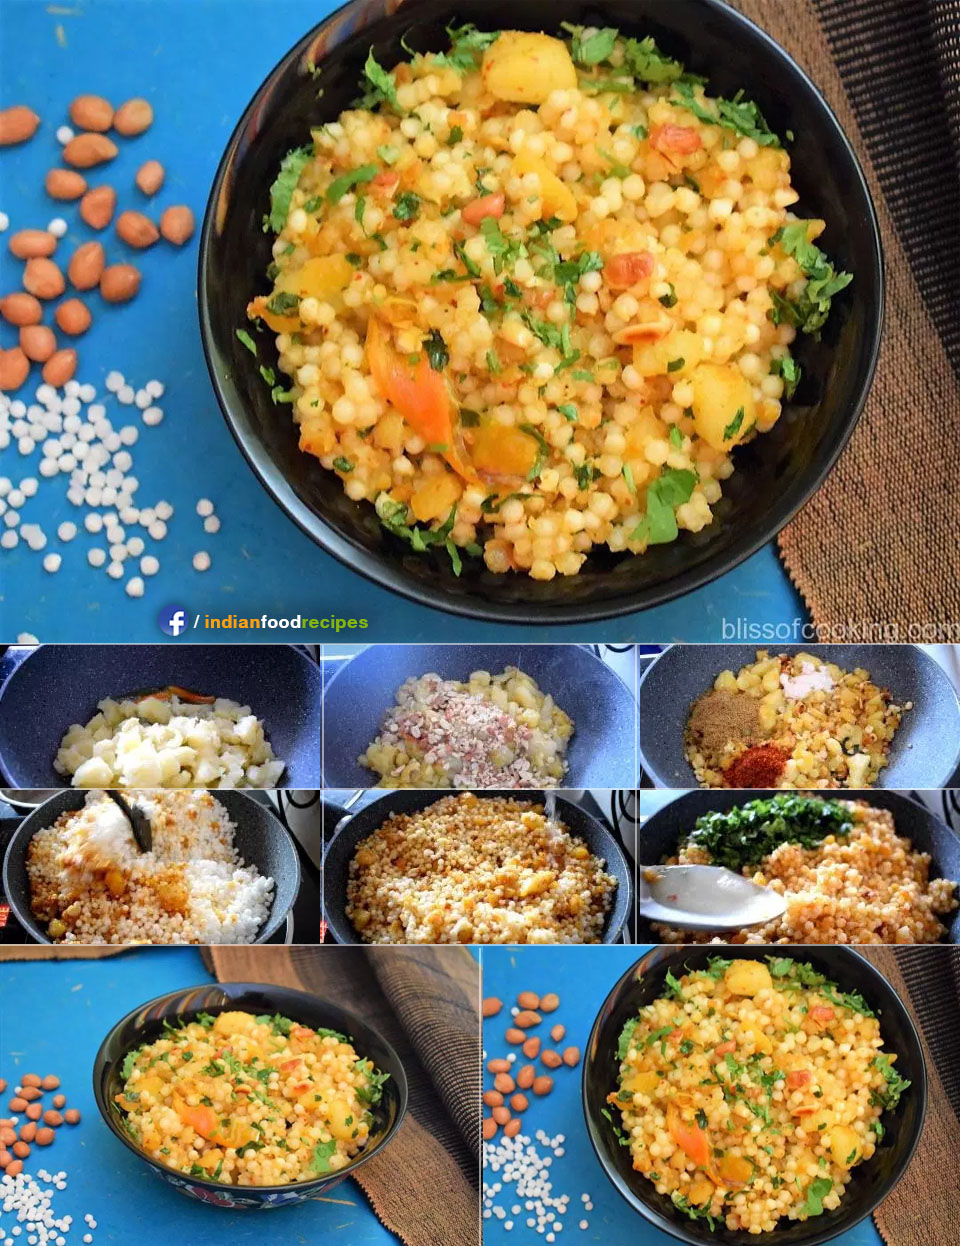 Falahari Sabudana Khichdi recipe step by step